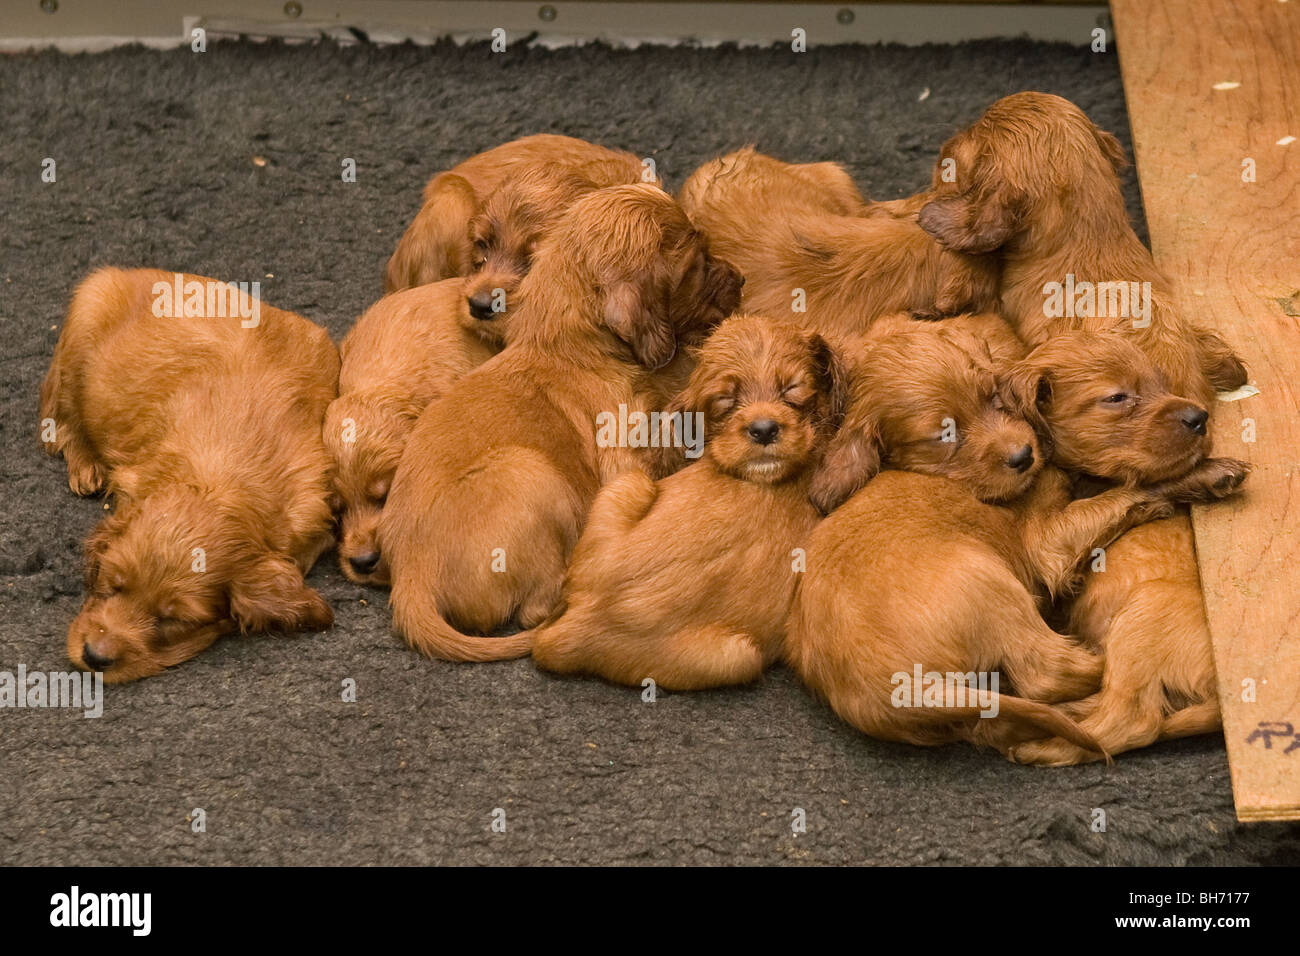 Litter of young irish setter puppies sleeping - Stock Image